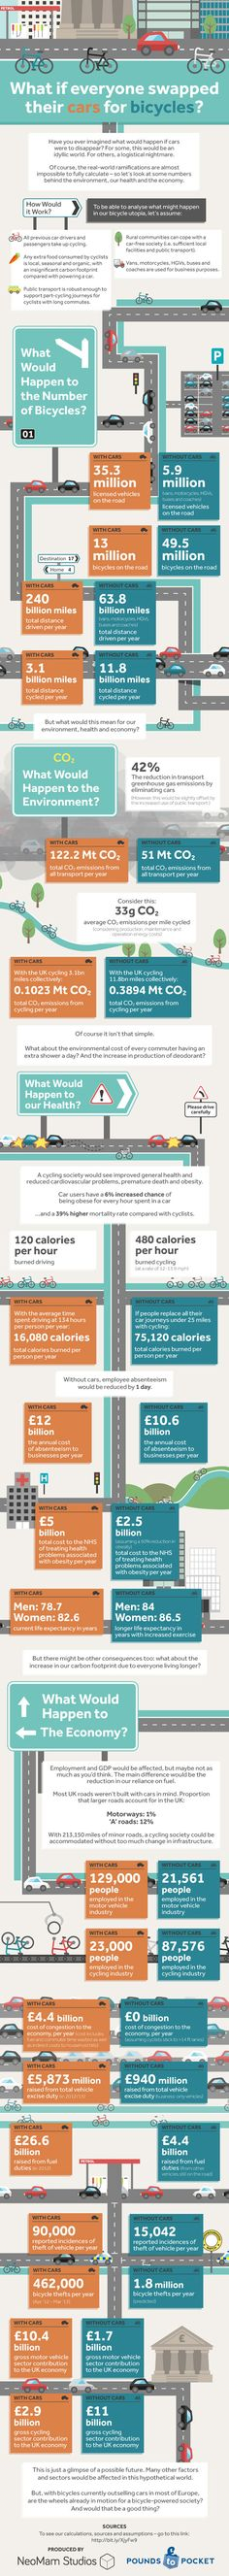 what-if-everyone-swapped-their-cars-for-bicycles-NEW.jpg (537×6041)